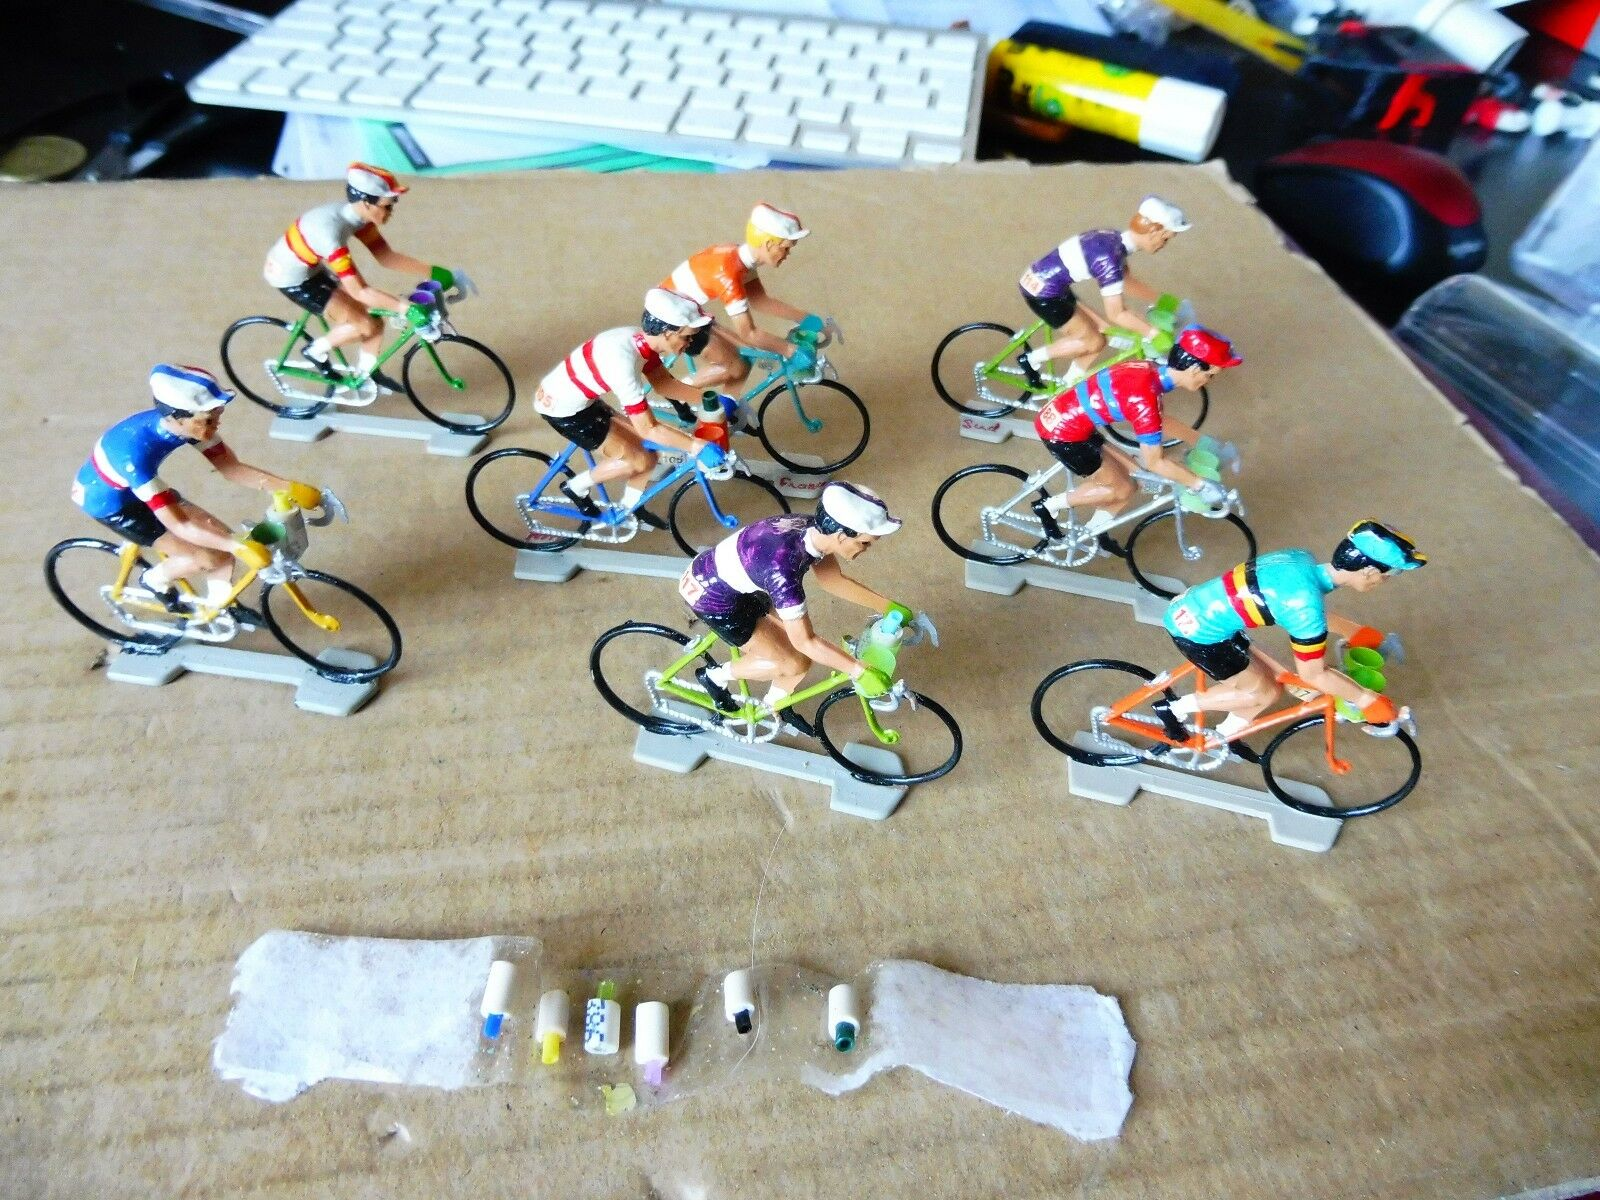 Lot de 8 cyclists plastic with door cans handlebar and cans removable